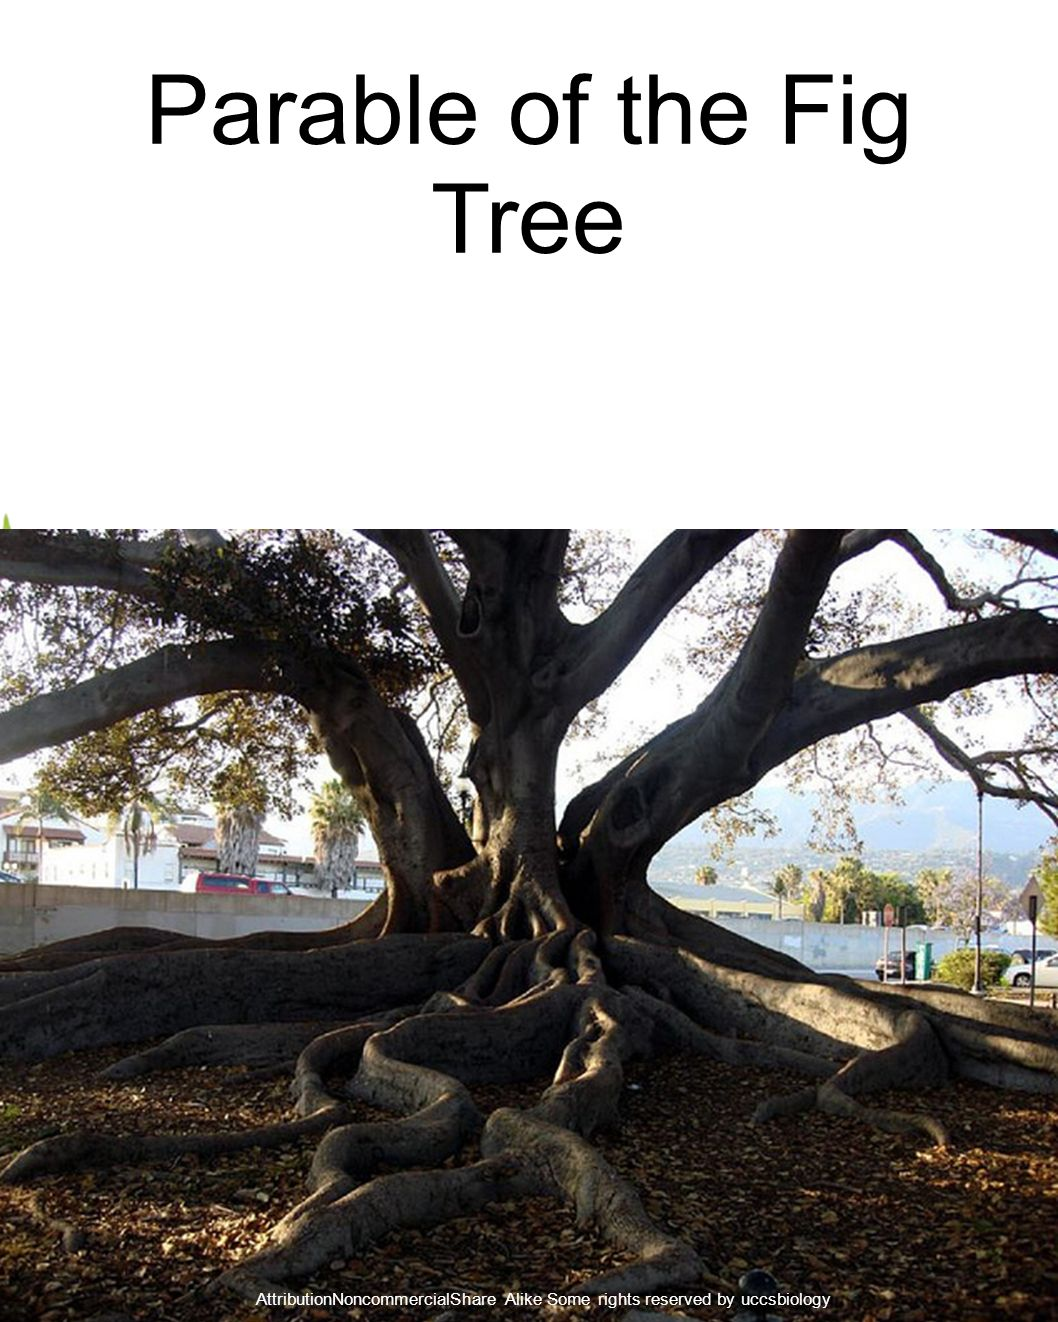 Parable of the Fig Tree AttributionNoncommercialShare Alike Some rights reserved by uccsbiology